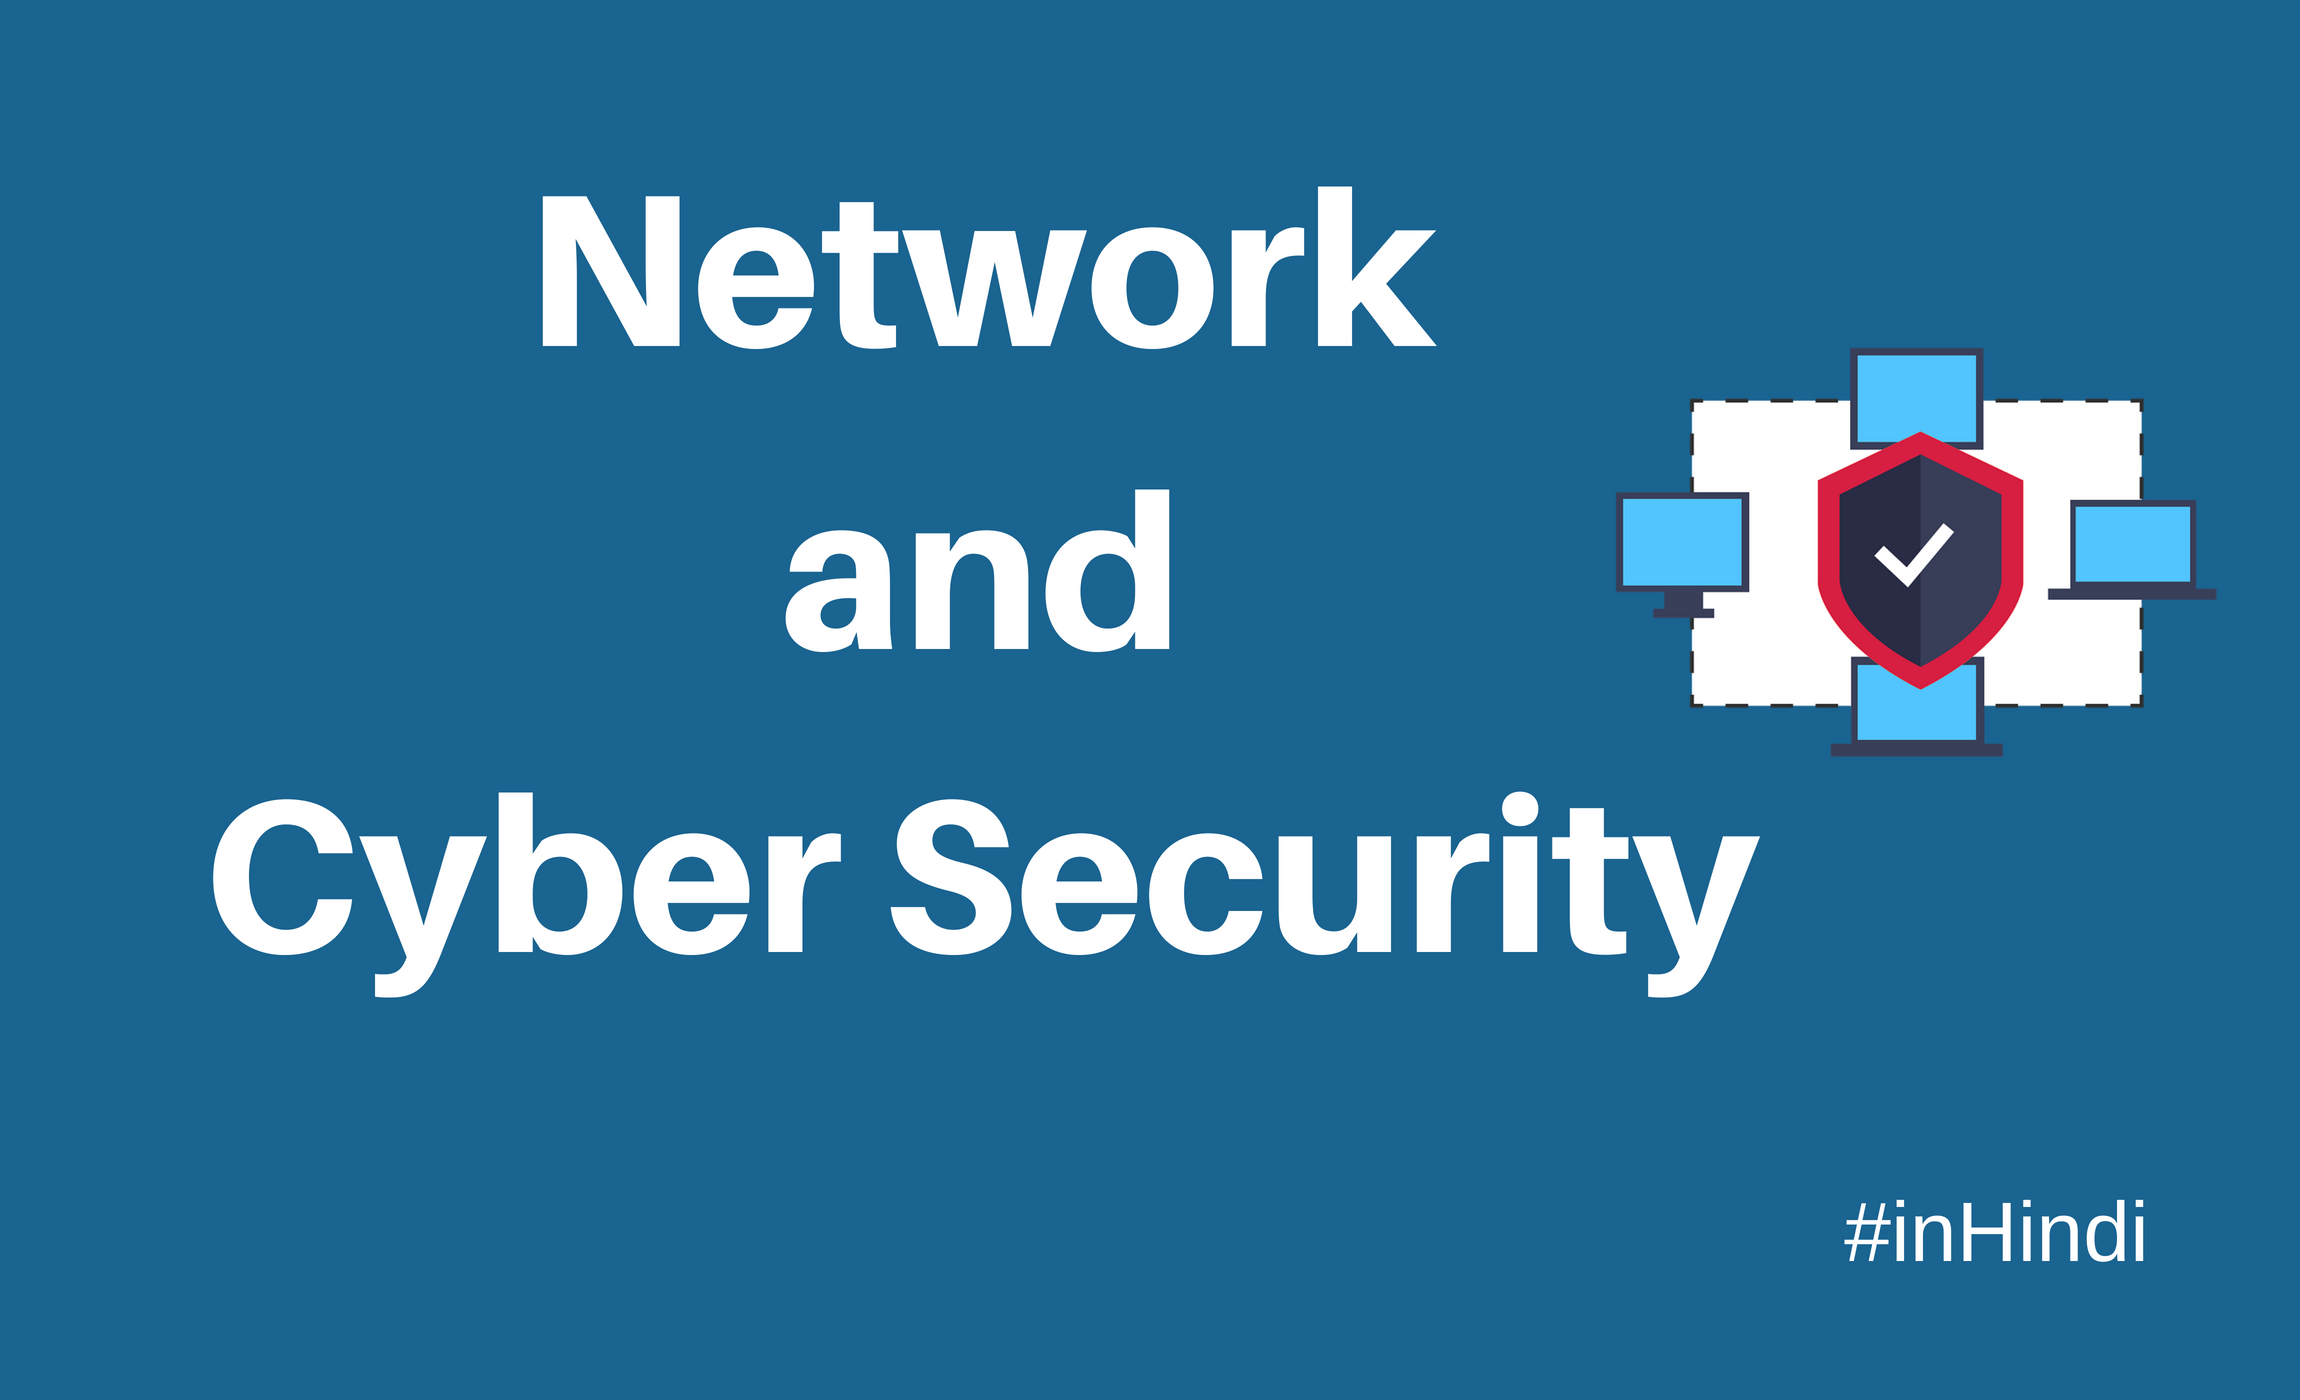 Network and Cyber security